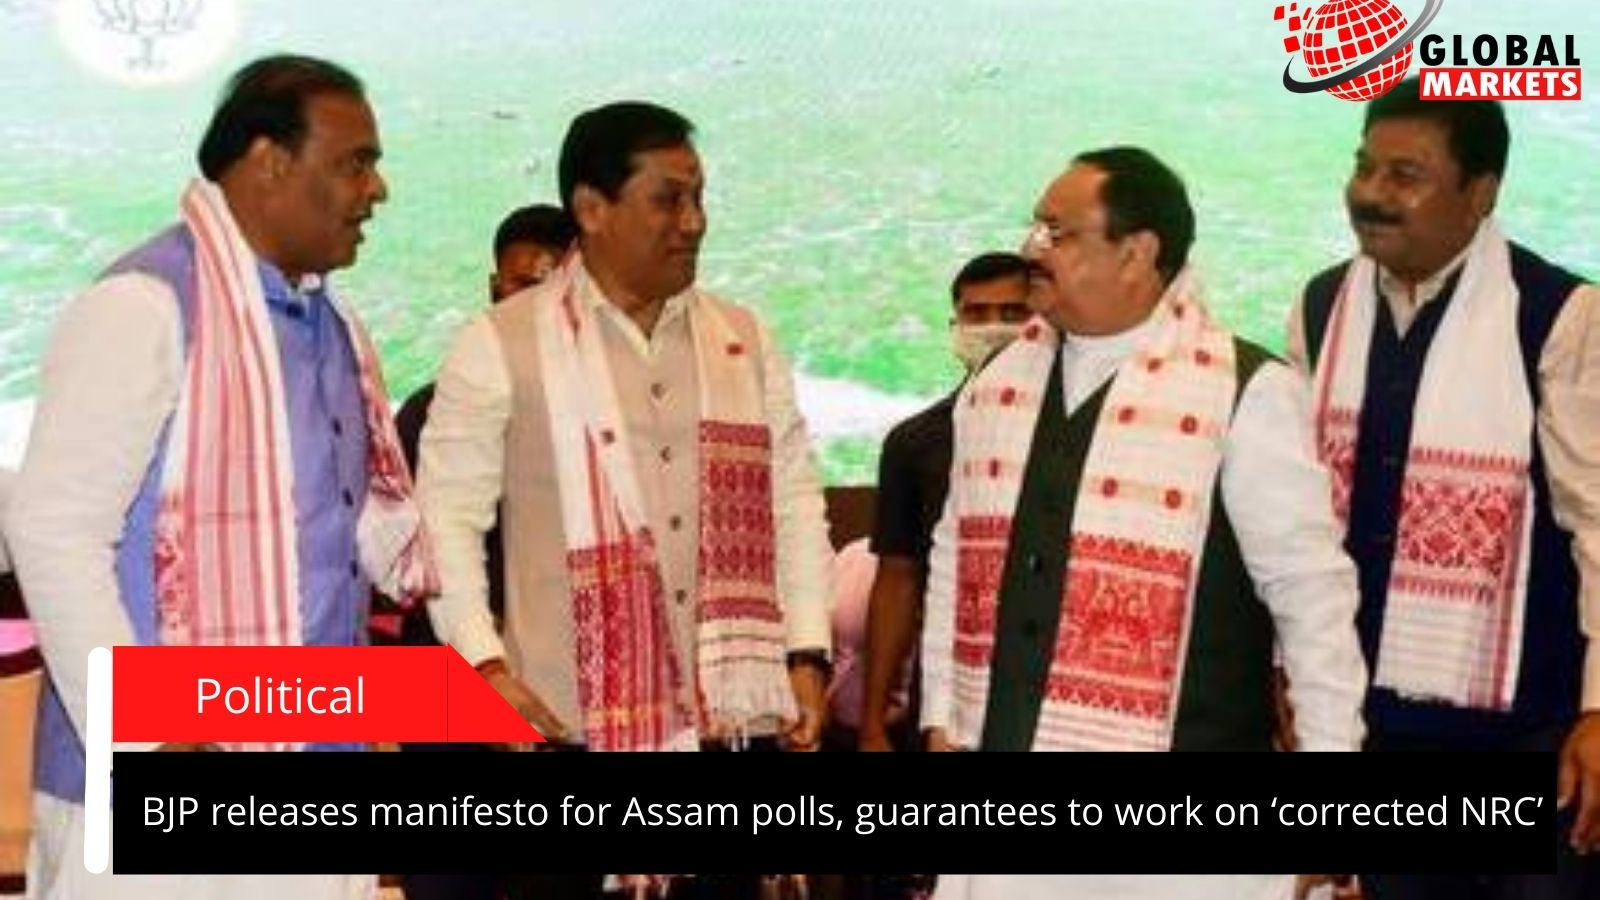 BJP releases manifesto for Assam polls, guarantees to work on 'corrected NRC'